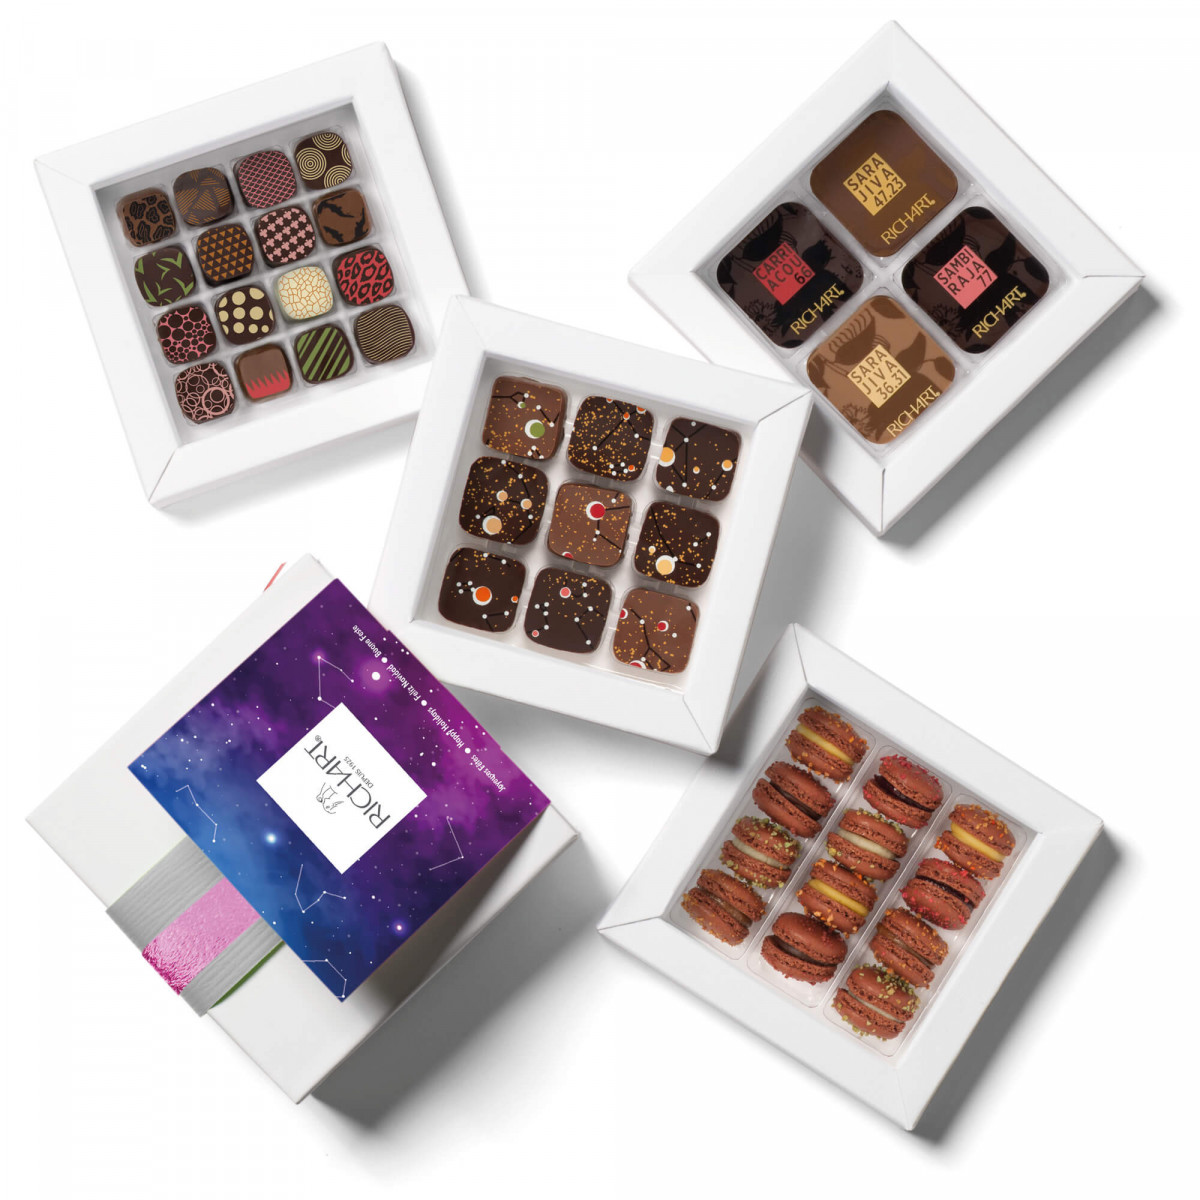 Constellations Iconiques assortiment chocolats fourrés